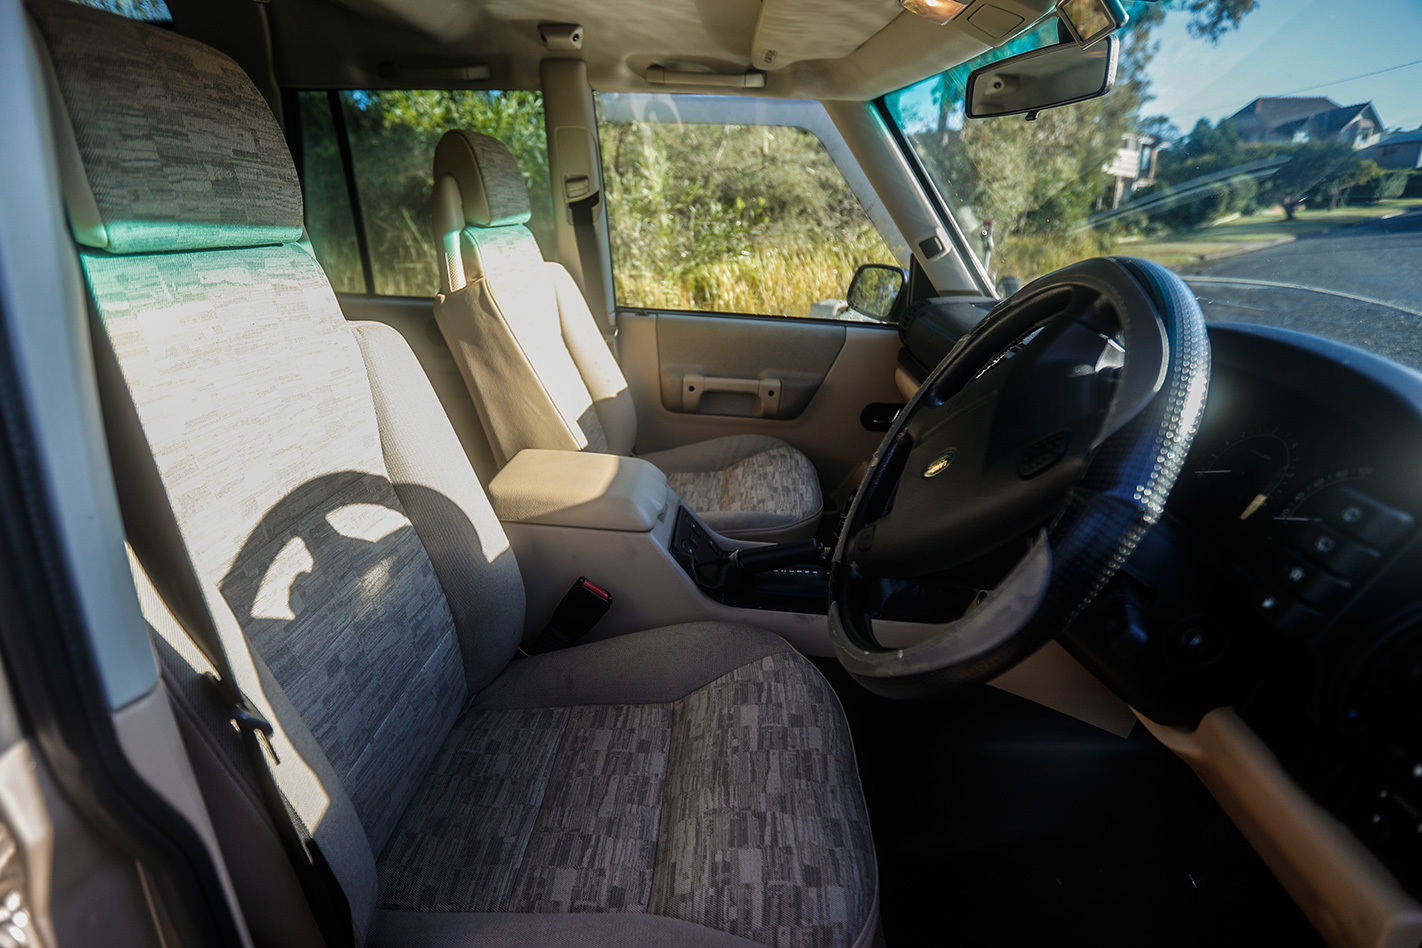 2003 Land Rover Discovery TD5 interior